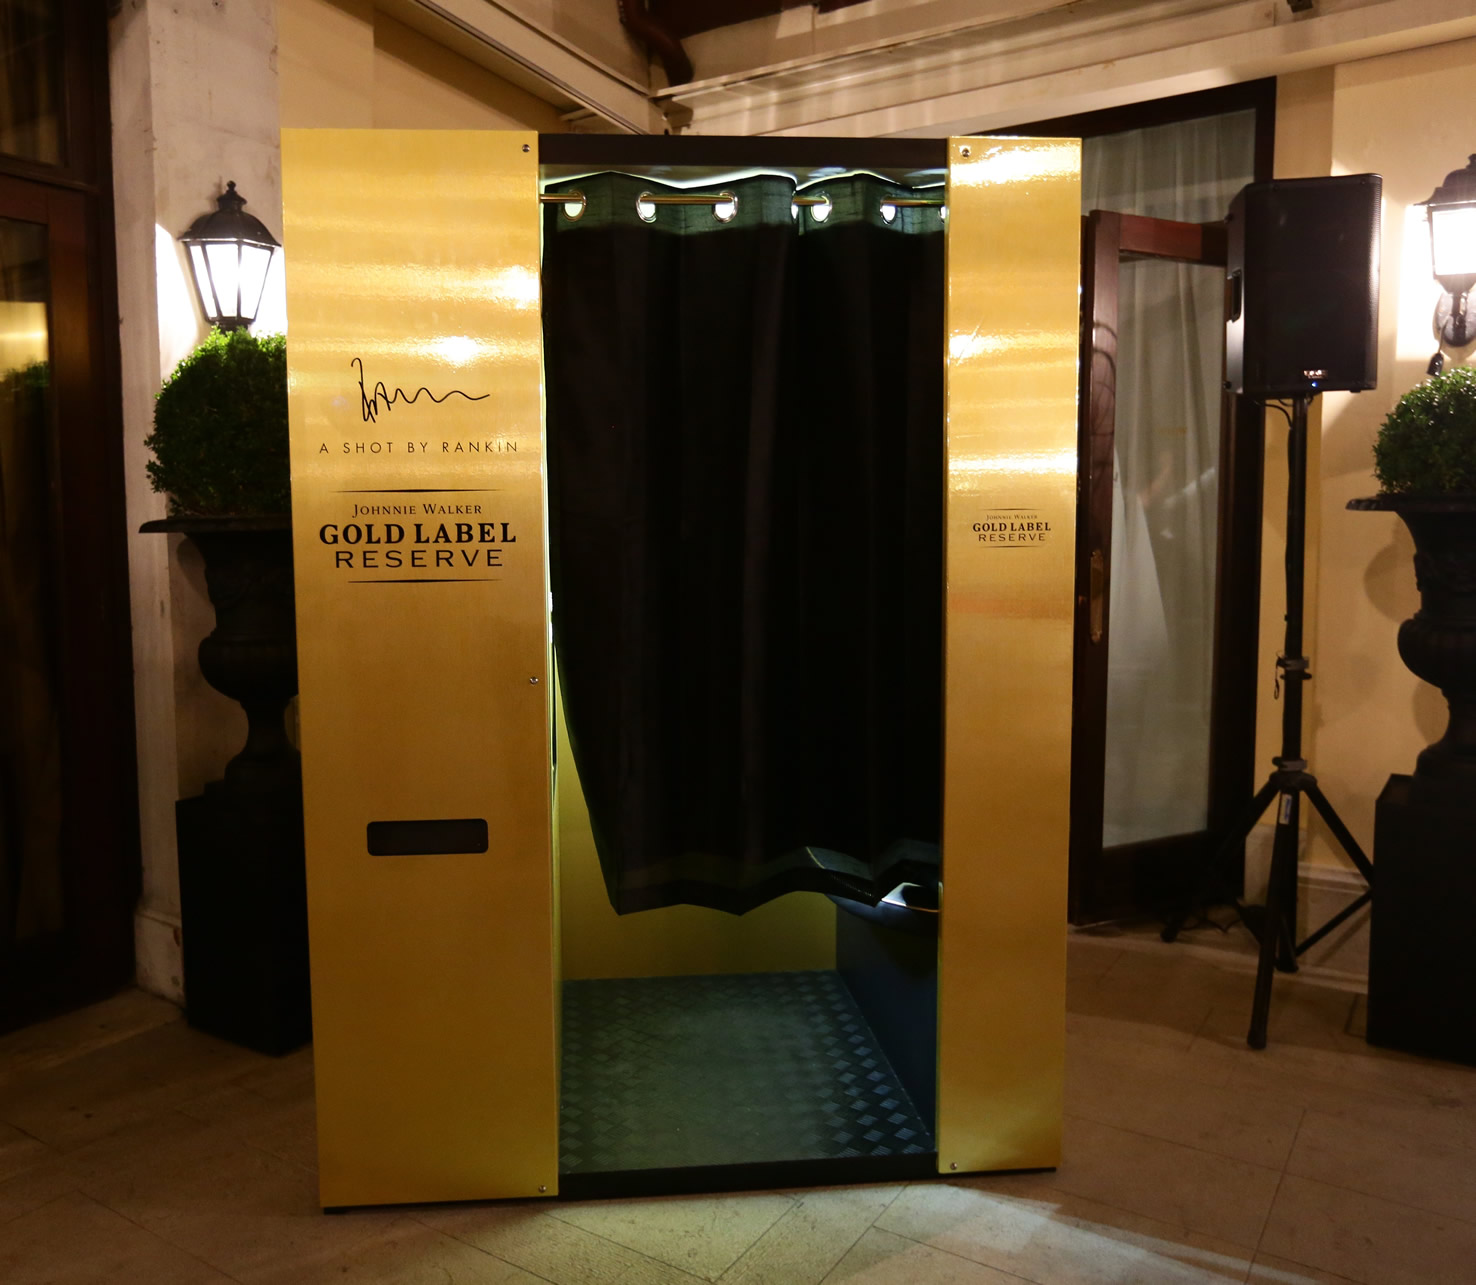 Johnnie Walker Gold Label Reserve unveils the last location for its luxury photobooth